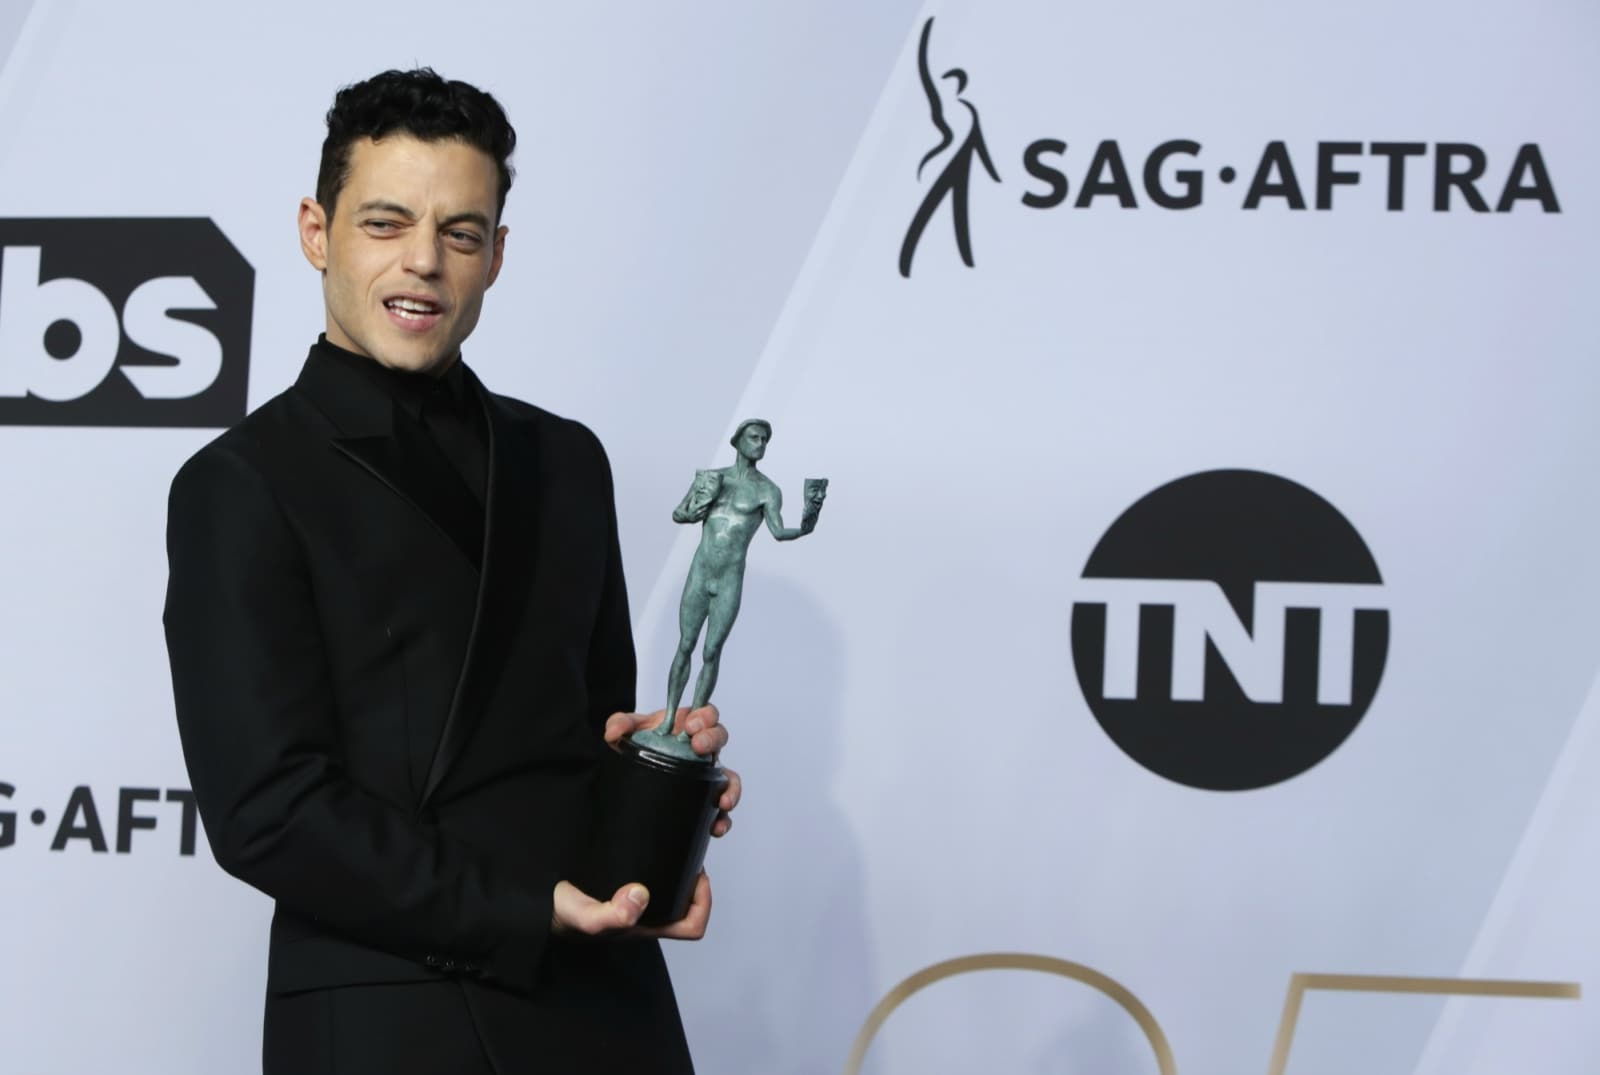 25th Screen Actors Guild Awards – Photo Room – Los Angeles, California, US, January 27, 2019 - Rami Malek poses backstage with his Outstanding Performance by a Male Actor in a Leading Role award for